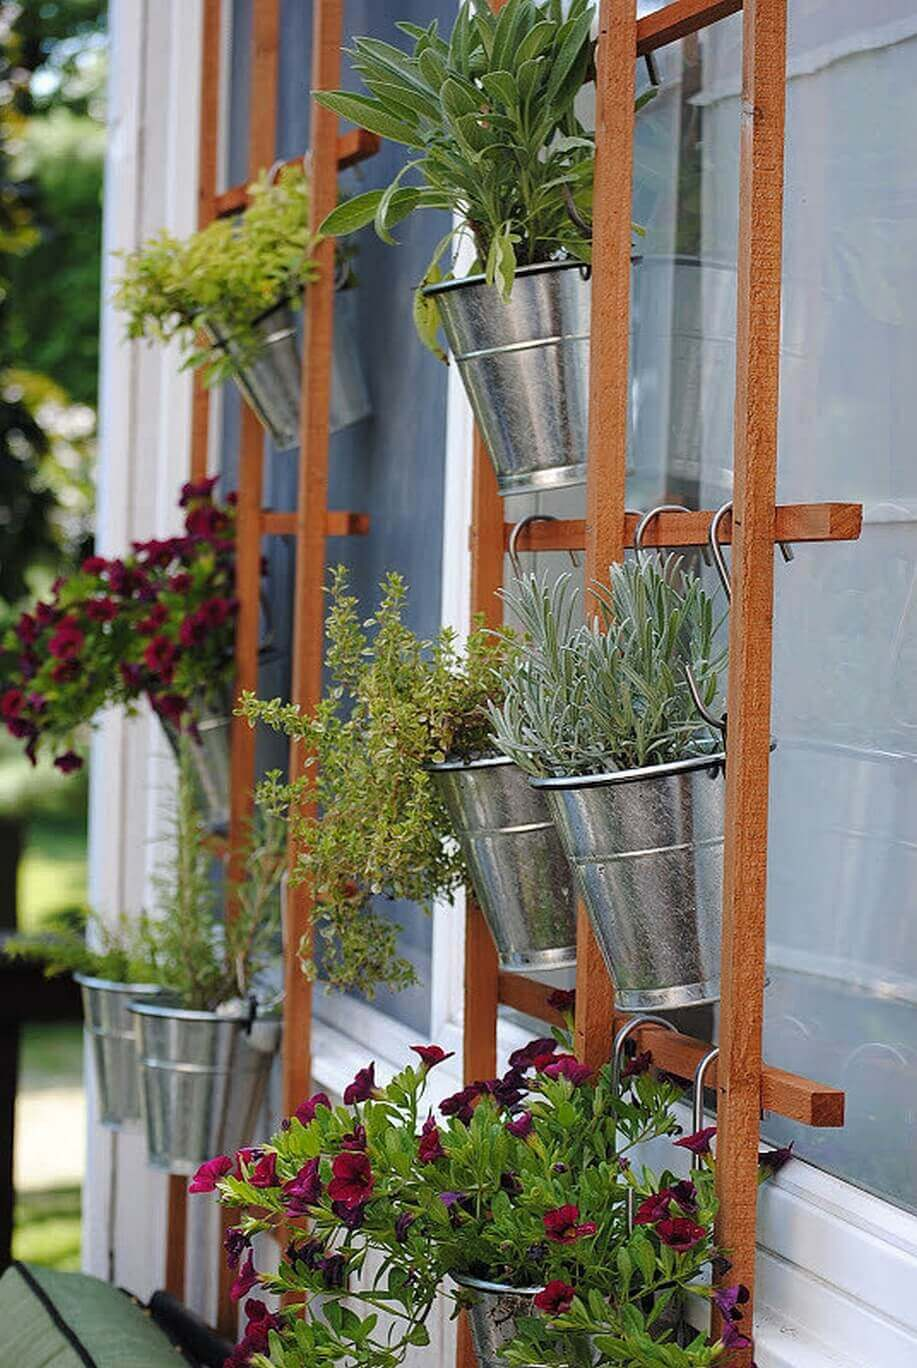 45 Best Outdoor Hanging Planter Ideas and Designs for 2020 on Hanging Plants Stand Design  id=69215